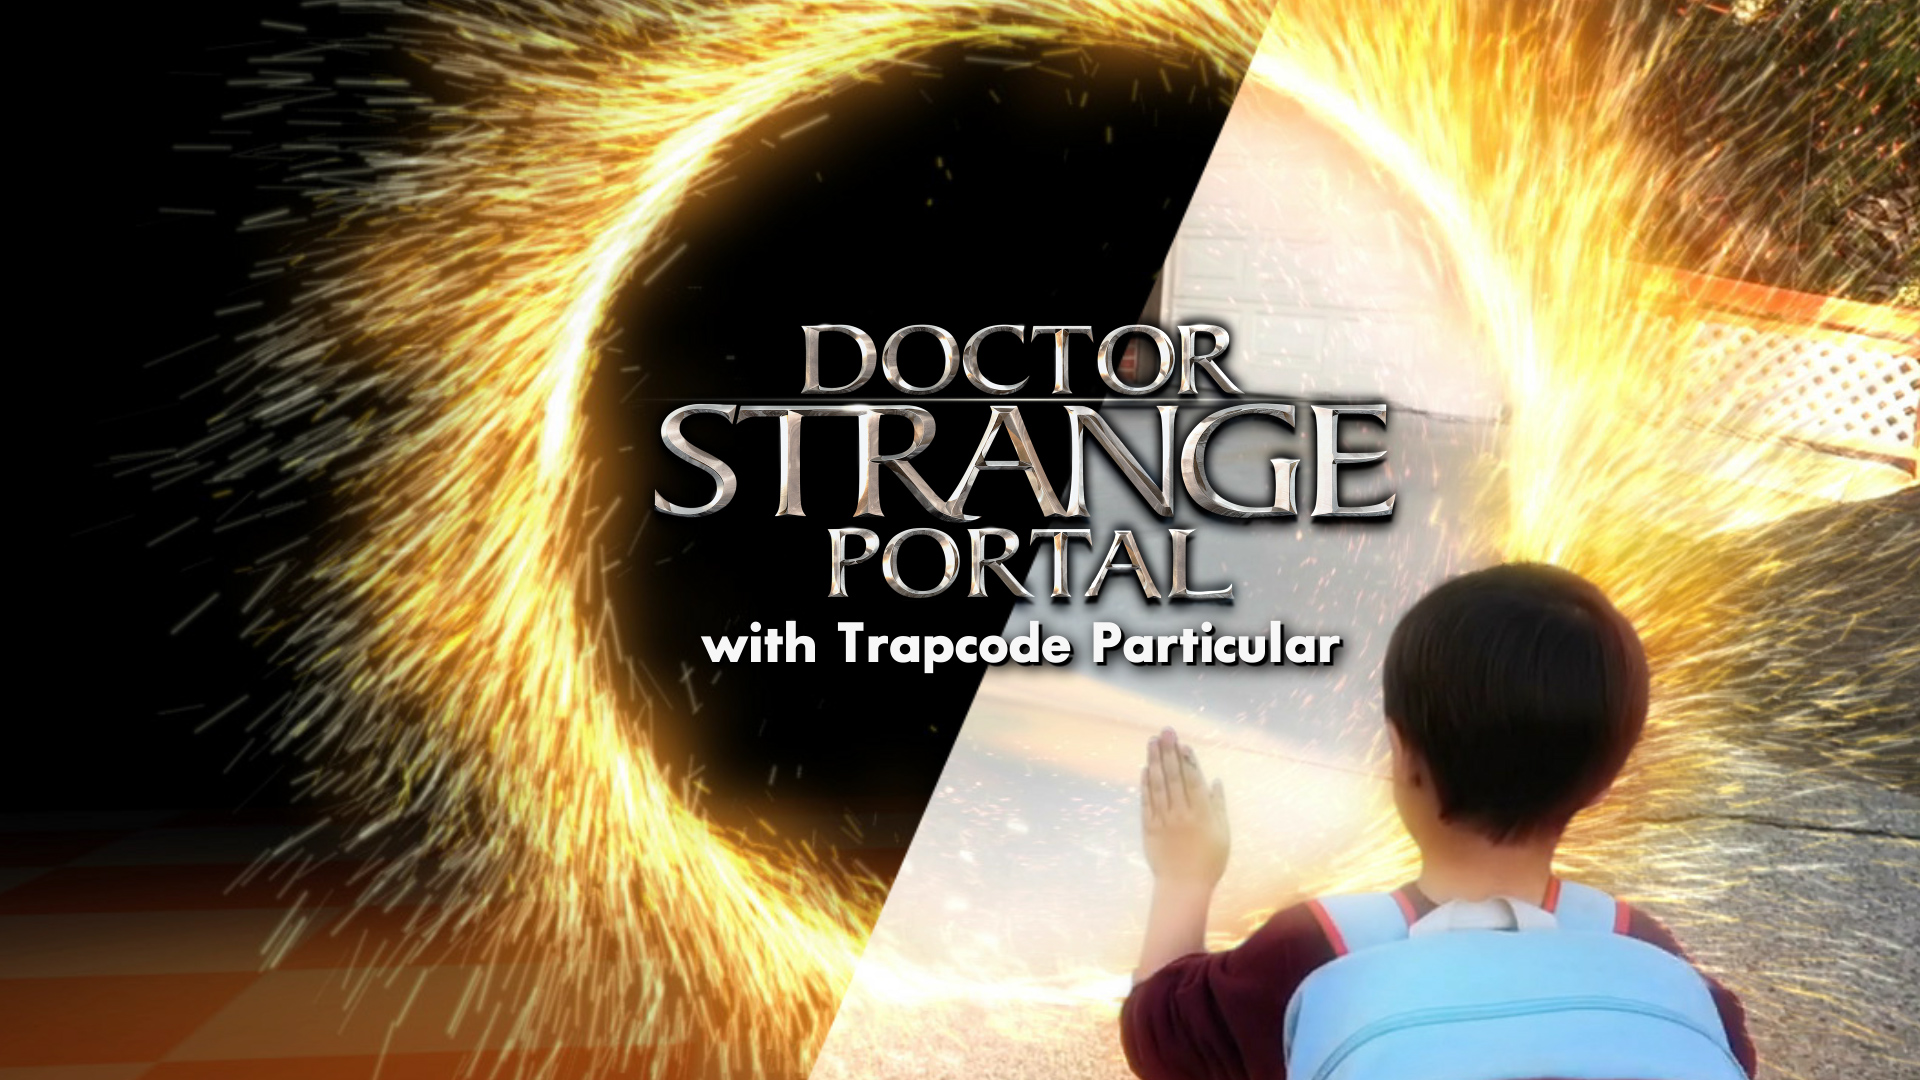 Episode 110: Dr. Strange Portal Effect with Trapcode Particular